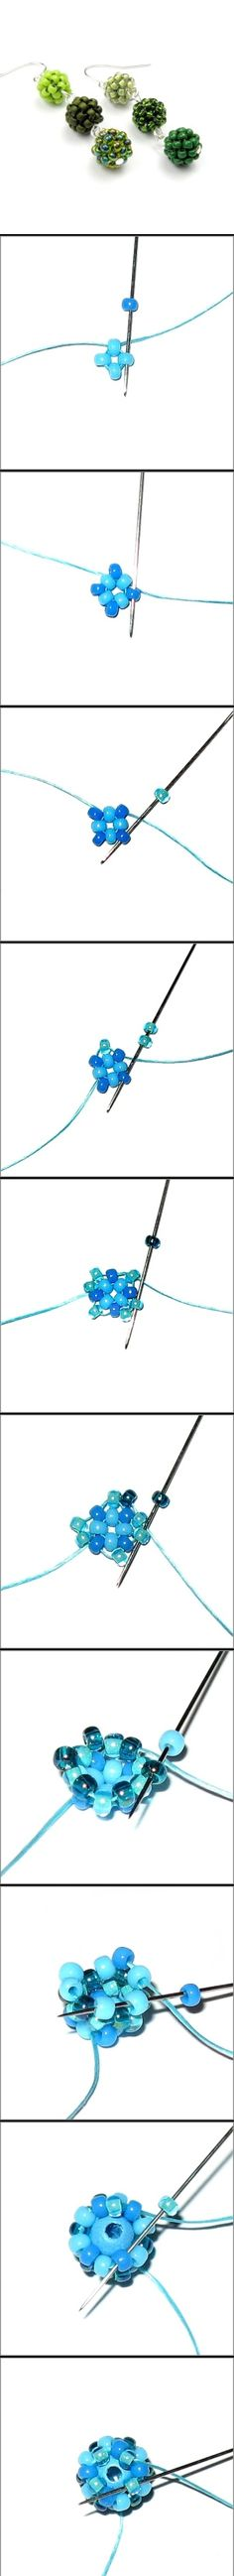 ❦ Tutorial ❦ ∙∙∙ Beaded Bead -  http://thecrimsonmoon.wordpress.com/2012/10/14/free-beaded-bead-tutorial-atom-beads/